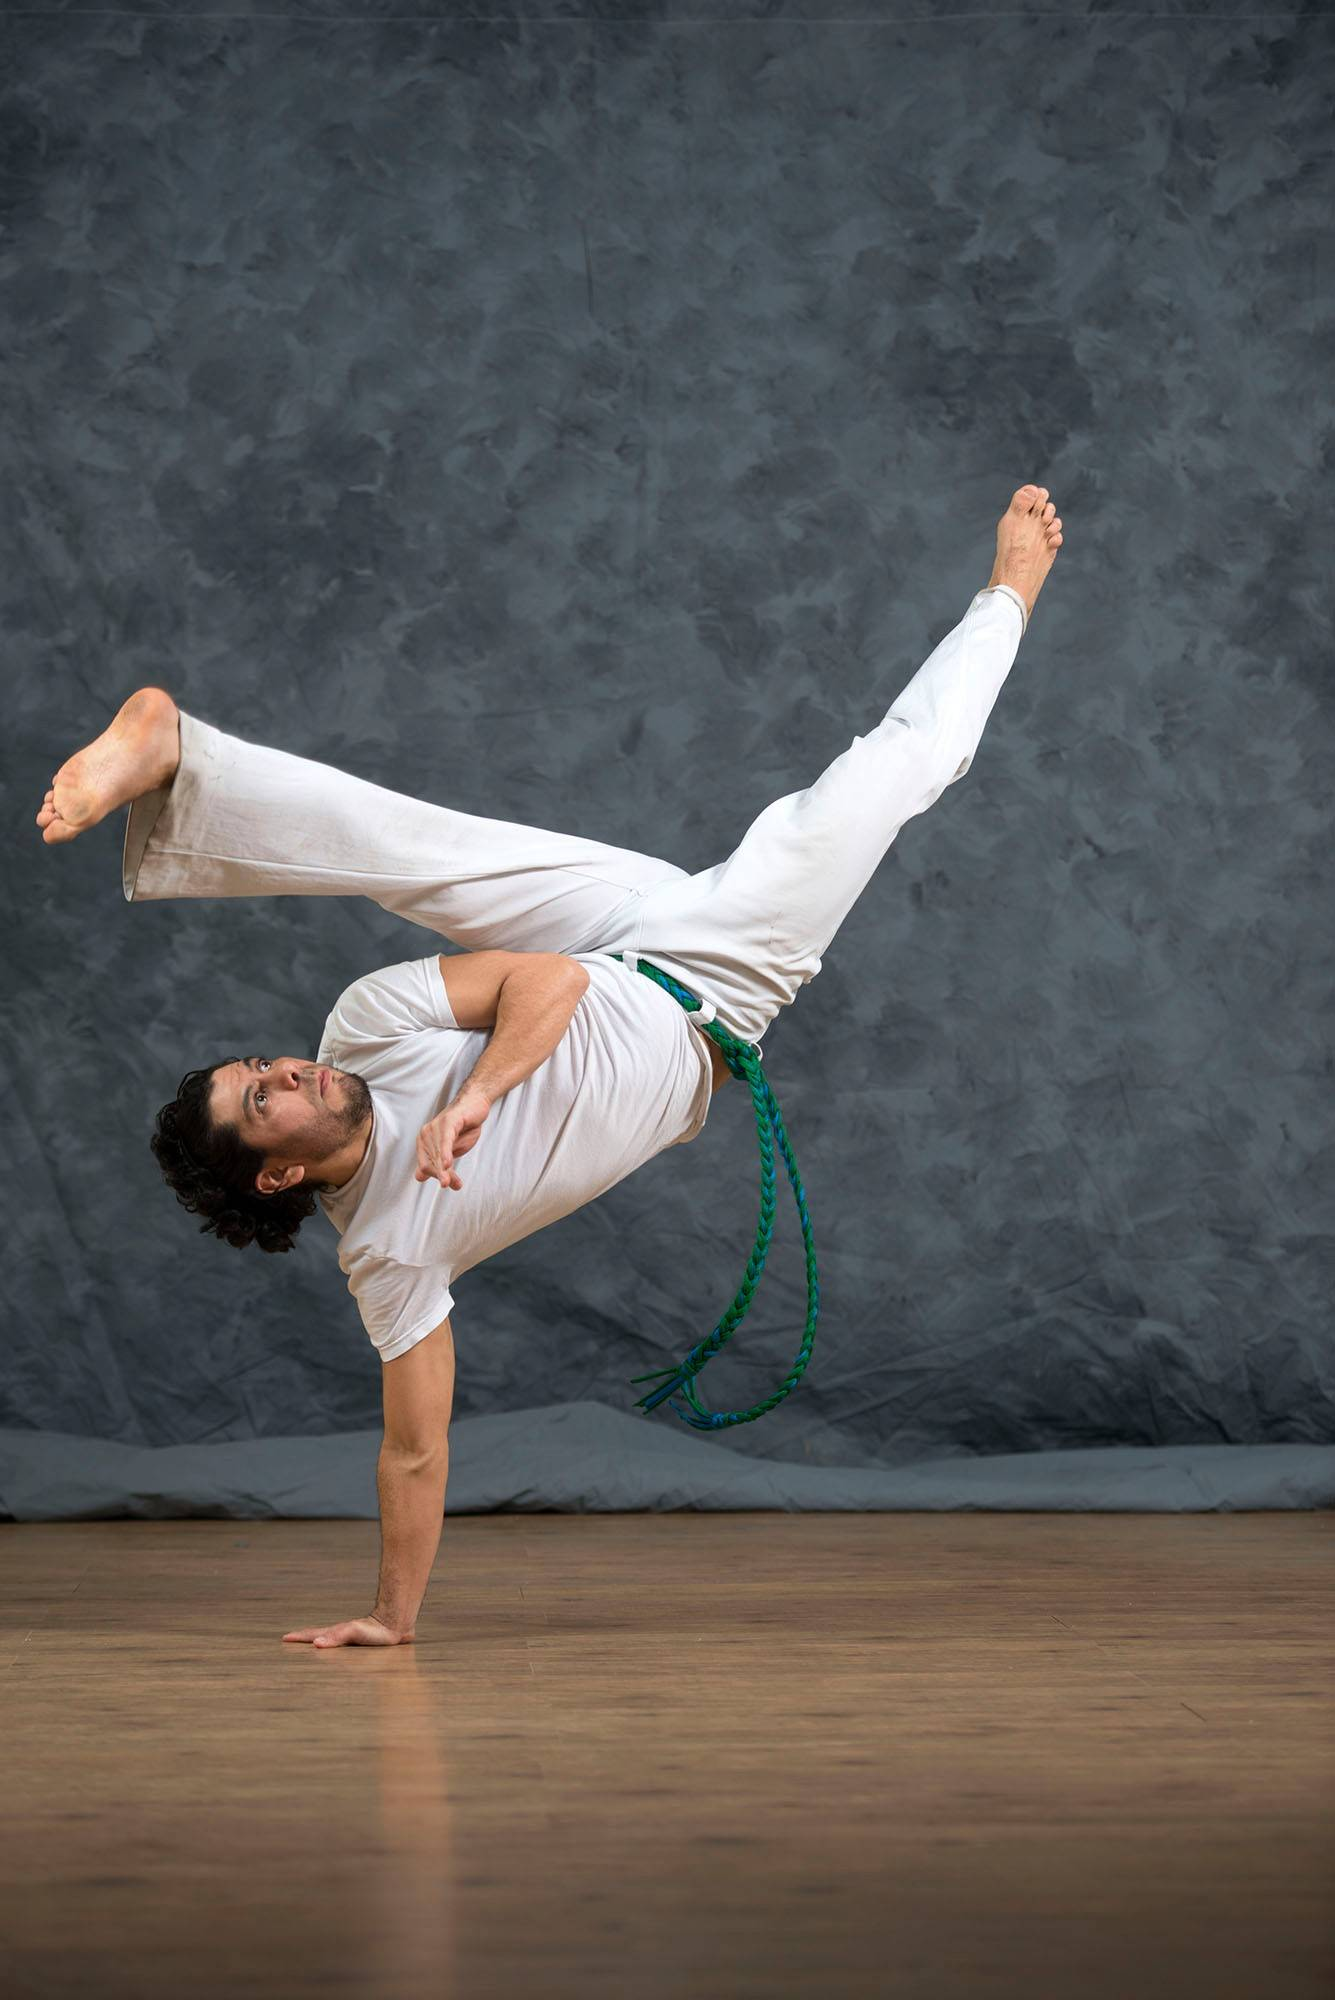 Roberto Tapia, owner of Roda Movements, demonstrates a capoeira move.